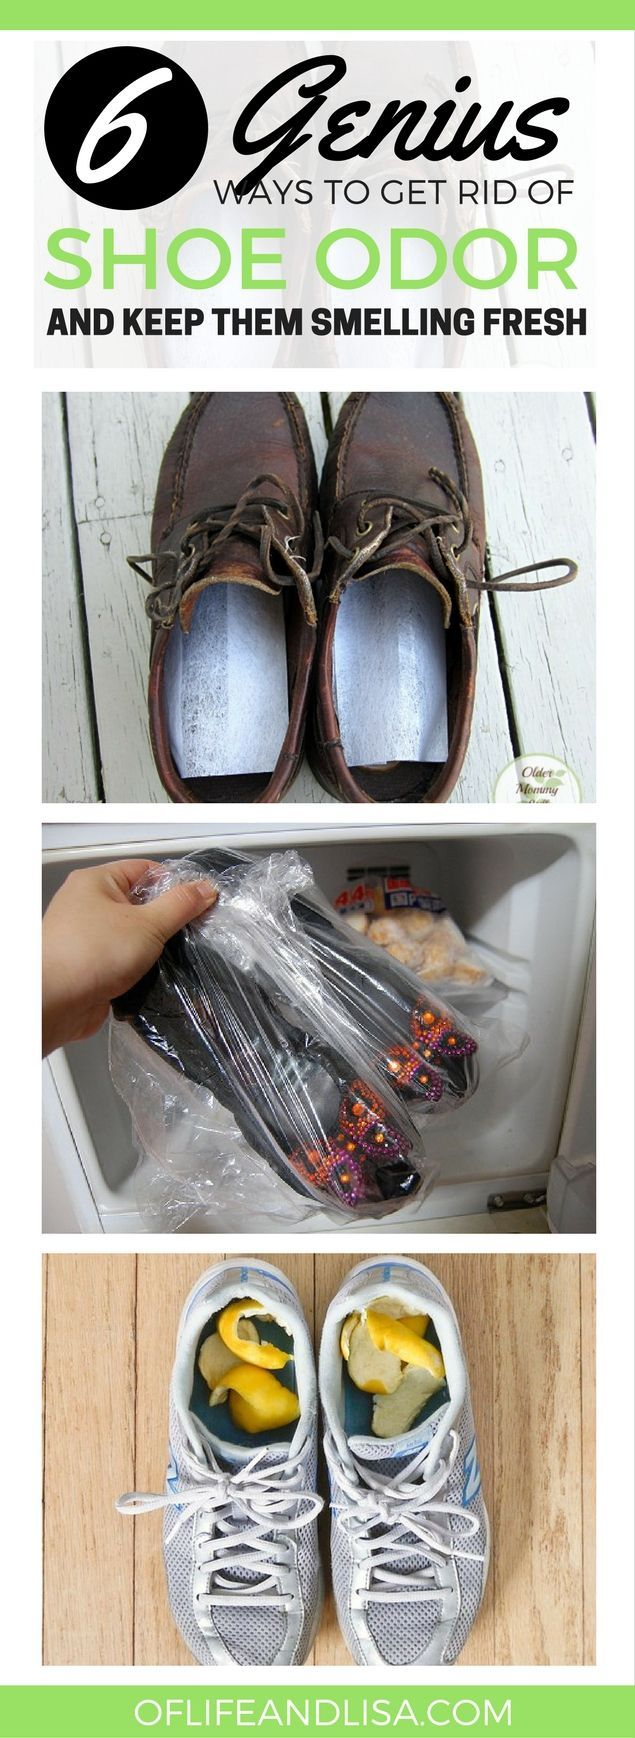 Make your stinky shoes smell like new again with these simple hacks! #home #cleaning #shoes